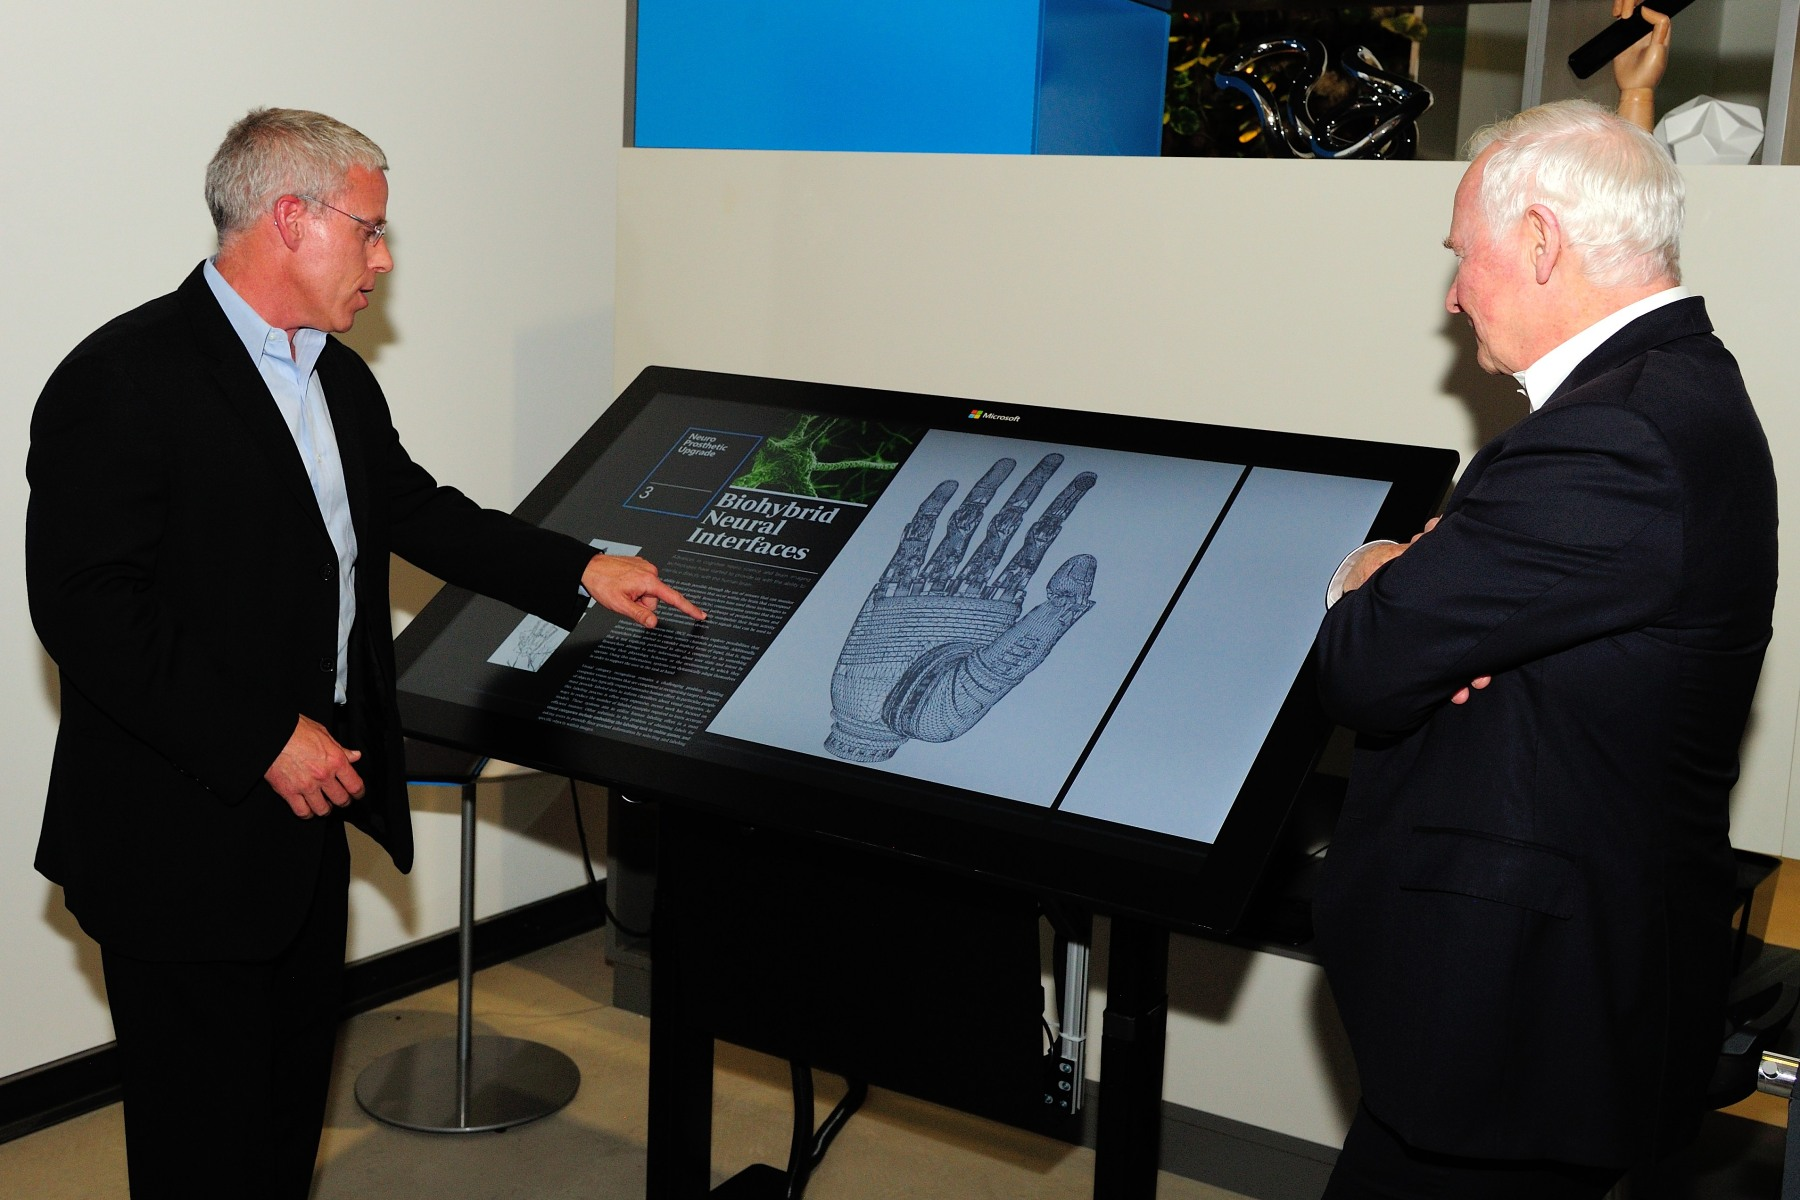 Mr. John Payes, Technical Account Manager, offered some explanations to His Excellency. Highlighted technologies at Microsoft's Envisioning Center include workplace collaboration tools, novel touchscreens, voice recognition and ubiquitous computing.